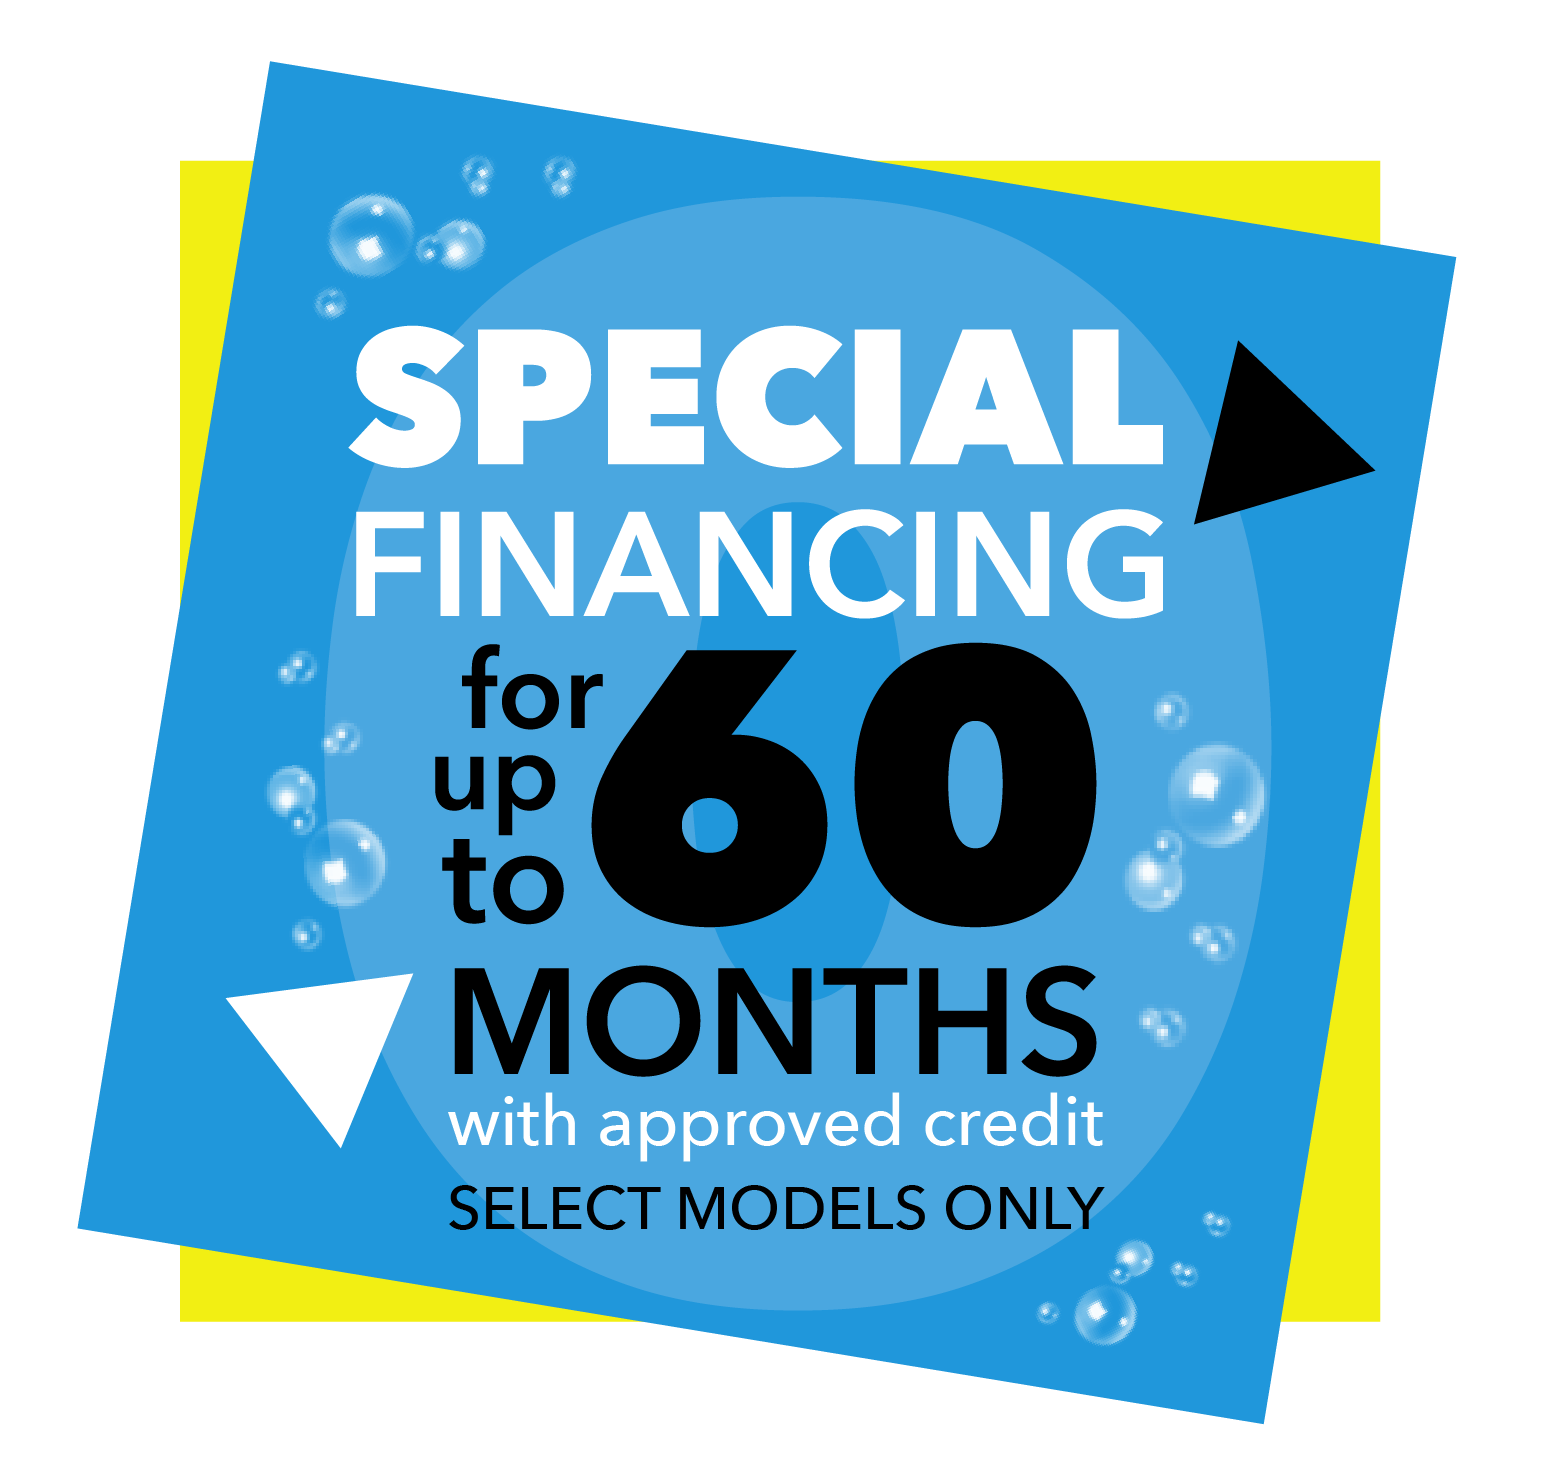 Special financing for up to 60 months with approved credit | Select models only